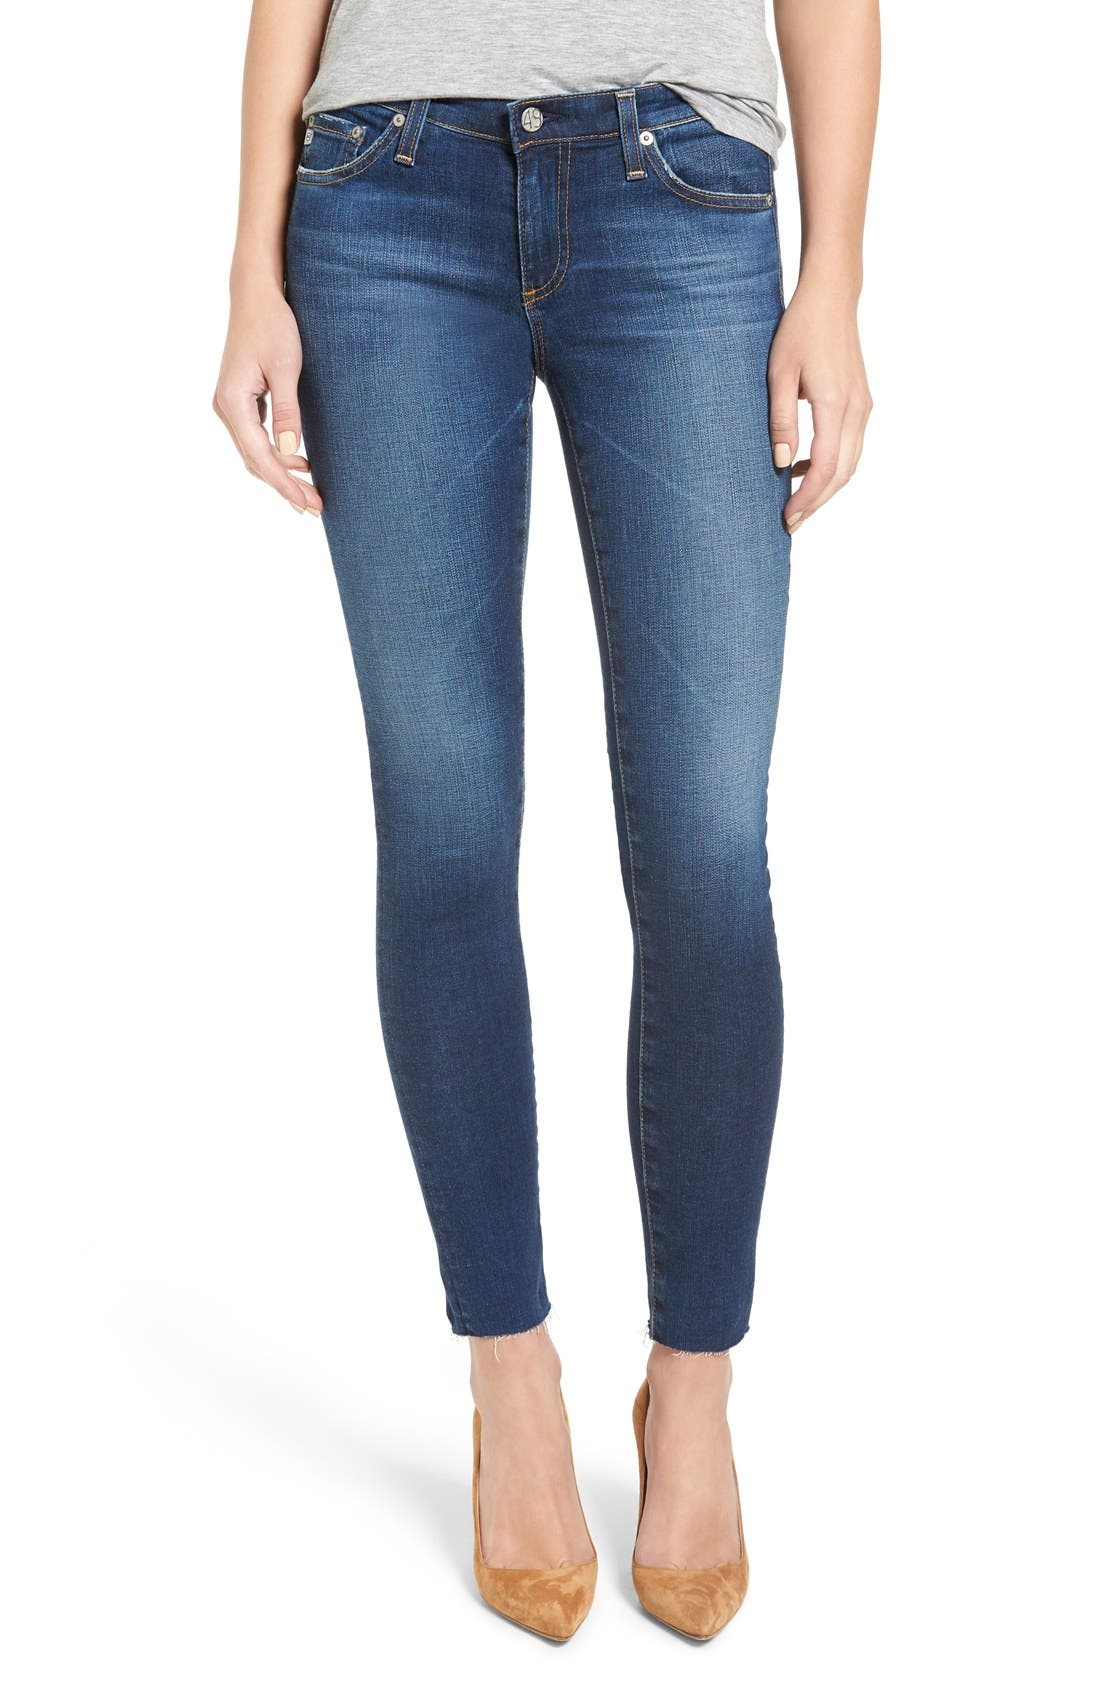 Main Image - AG 'The Legging' Ankle Jeans (7 Year Break with Raw Hem)